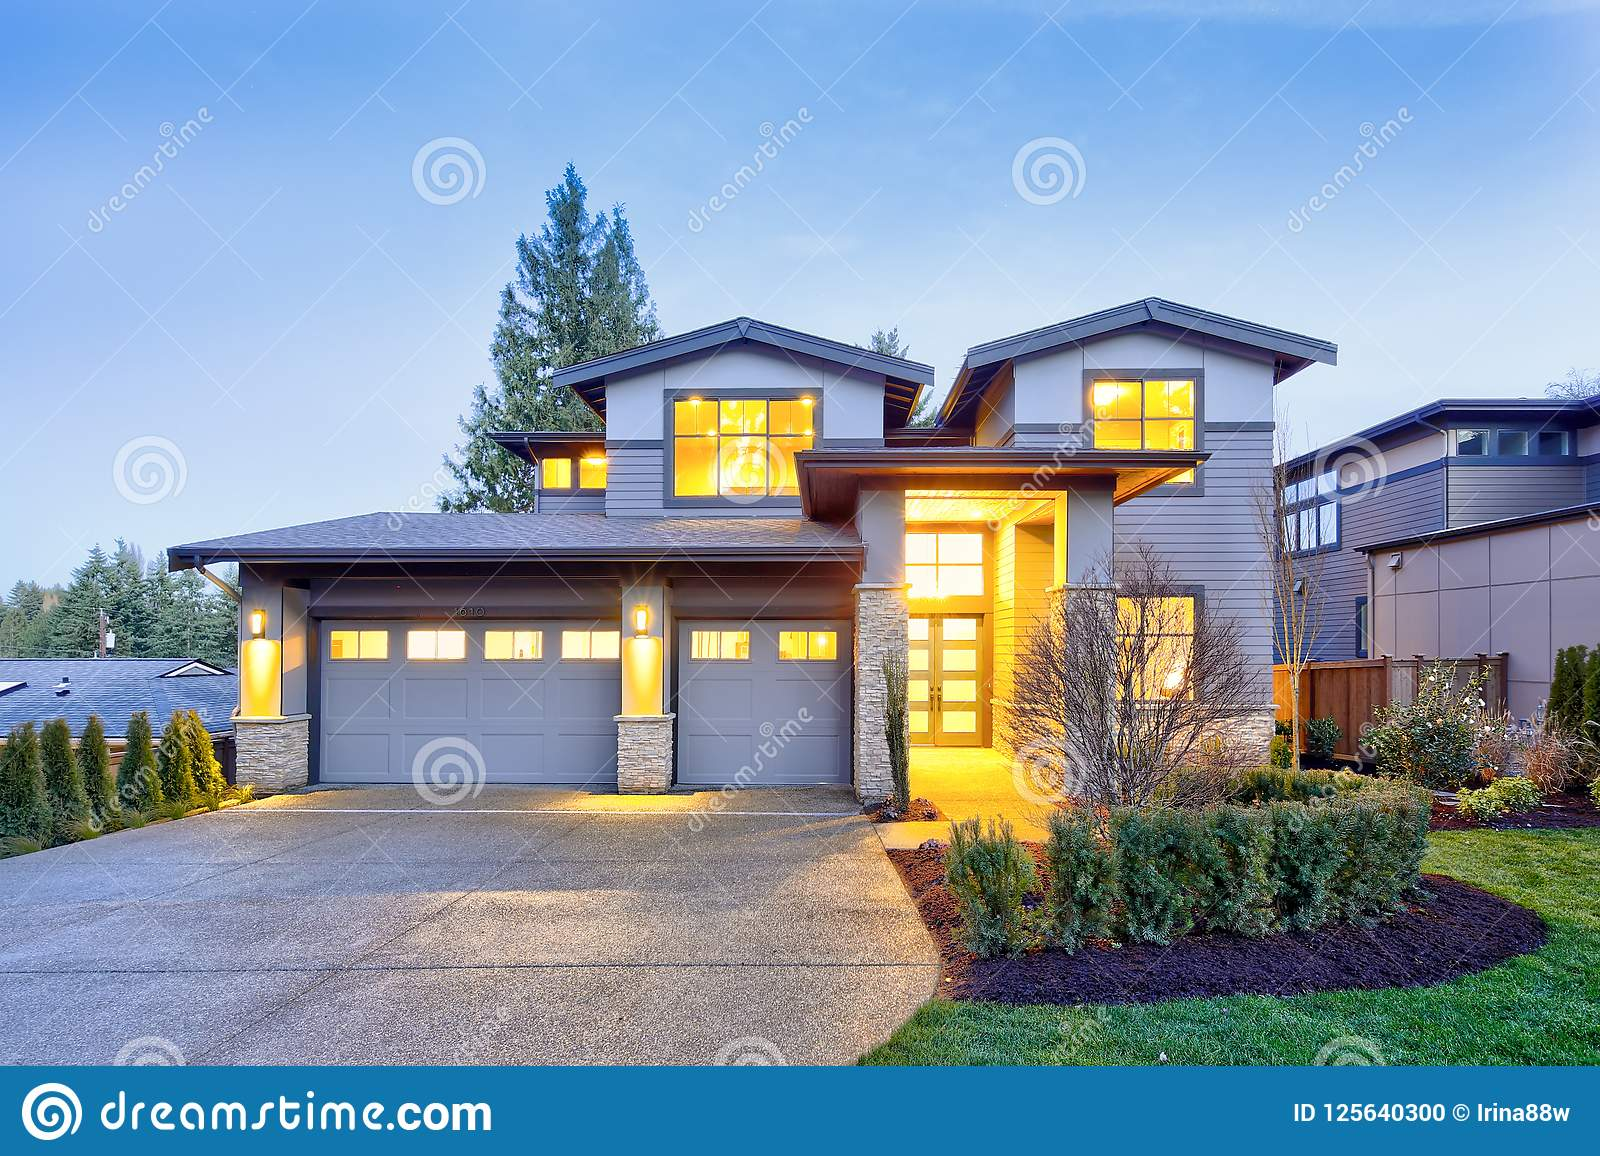 Grey Luxury Modern Two Story Tall House Exterior With Stone Columns on front entrance way designs, stone garage designs, stone bedroom designs, stone deck designs, front door entrance designs, stone yard designs, deck entrance designs, stone interior designs, stone wall designs, rock entrance designs, stone pond designs, stone garden designs, front step designs, driveway entrance designs, neighborhood entrance designs, front entry designs, brick entrance designs, entrance landscape designs, stone patio designs, subdivision entrance designs,